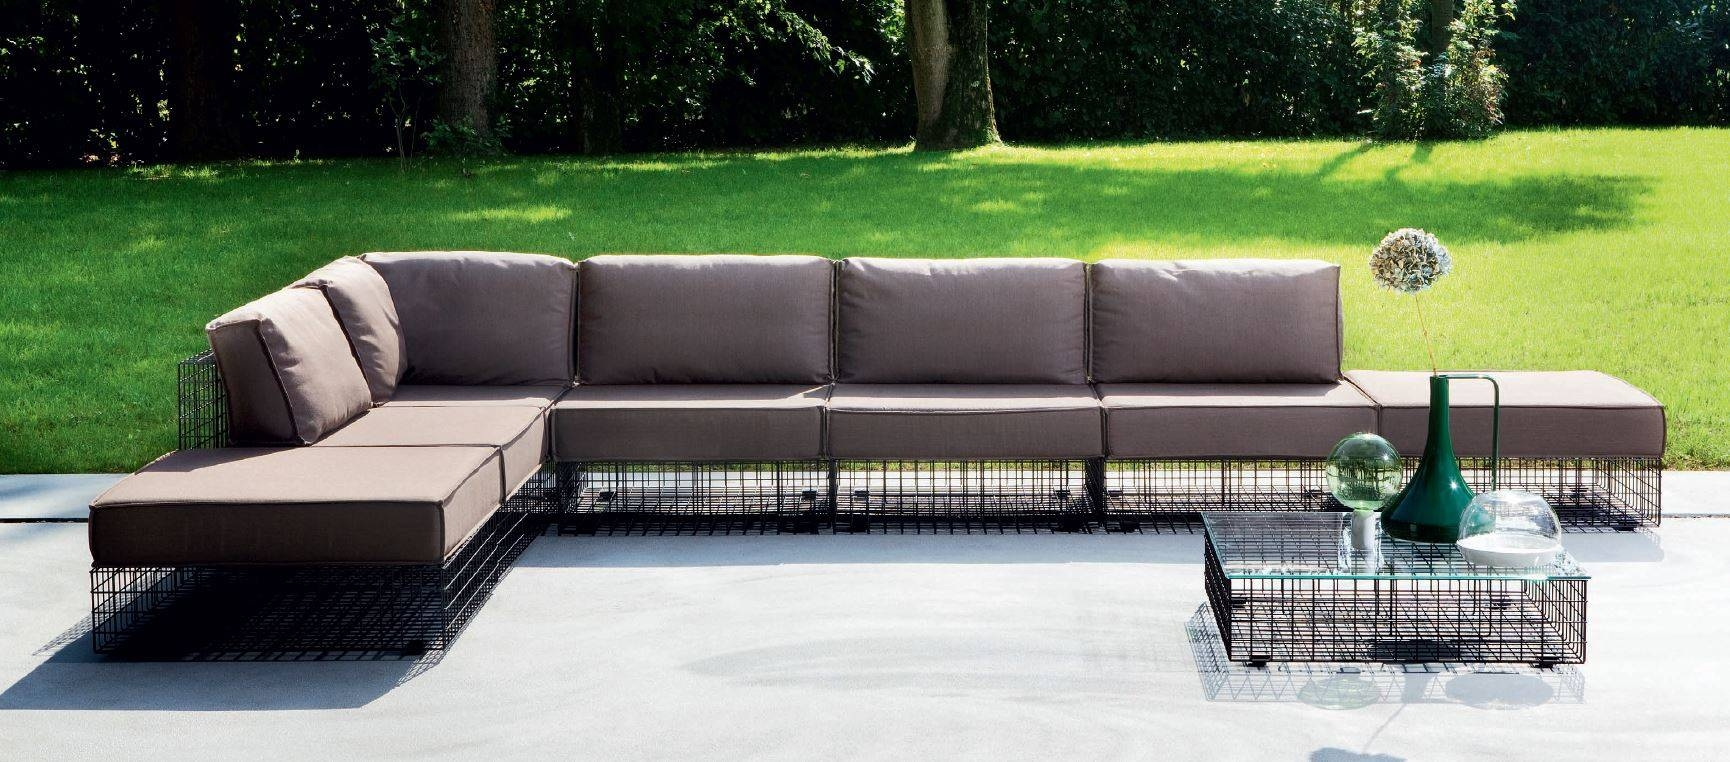 Outdoor Furniture Designer - Home Design for Outdoor Sofa Chairs (Image 19 of 30)